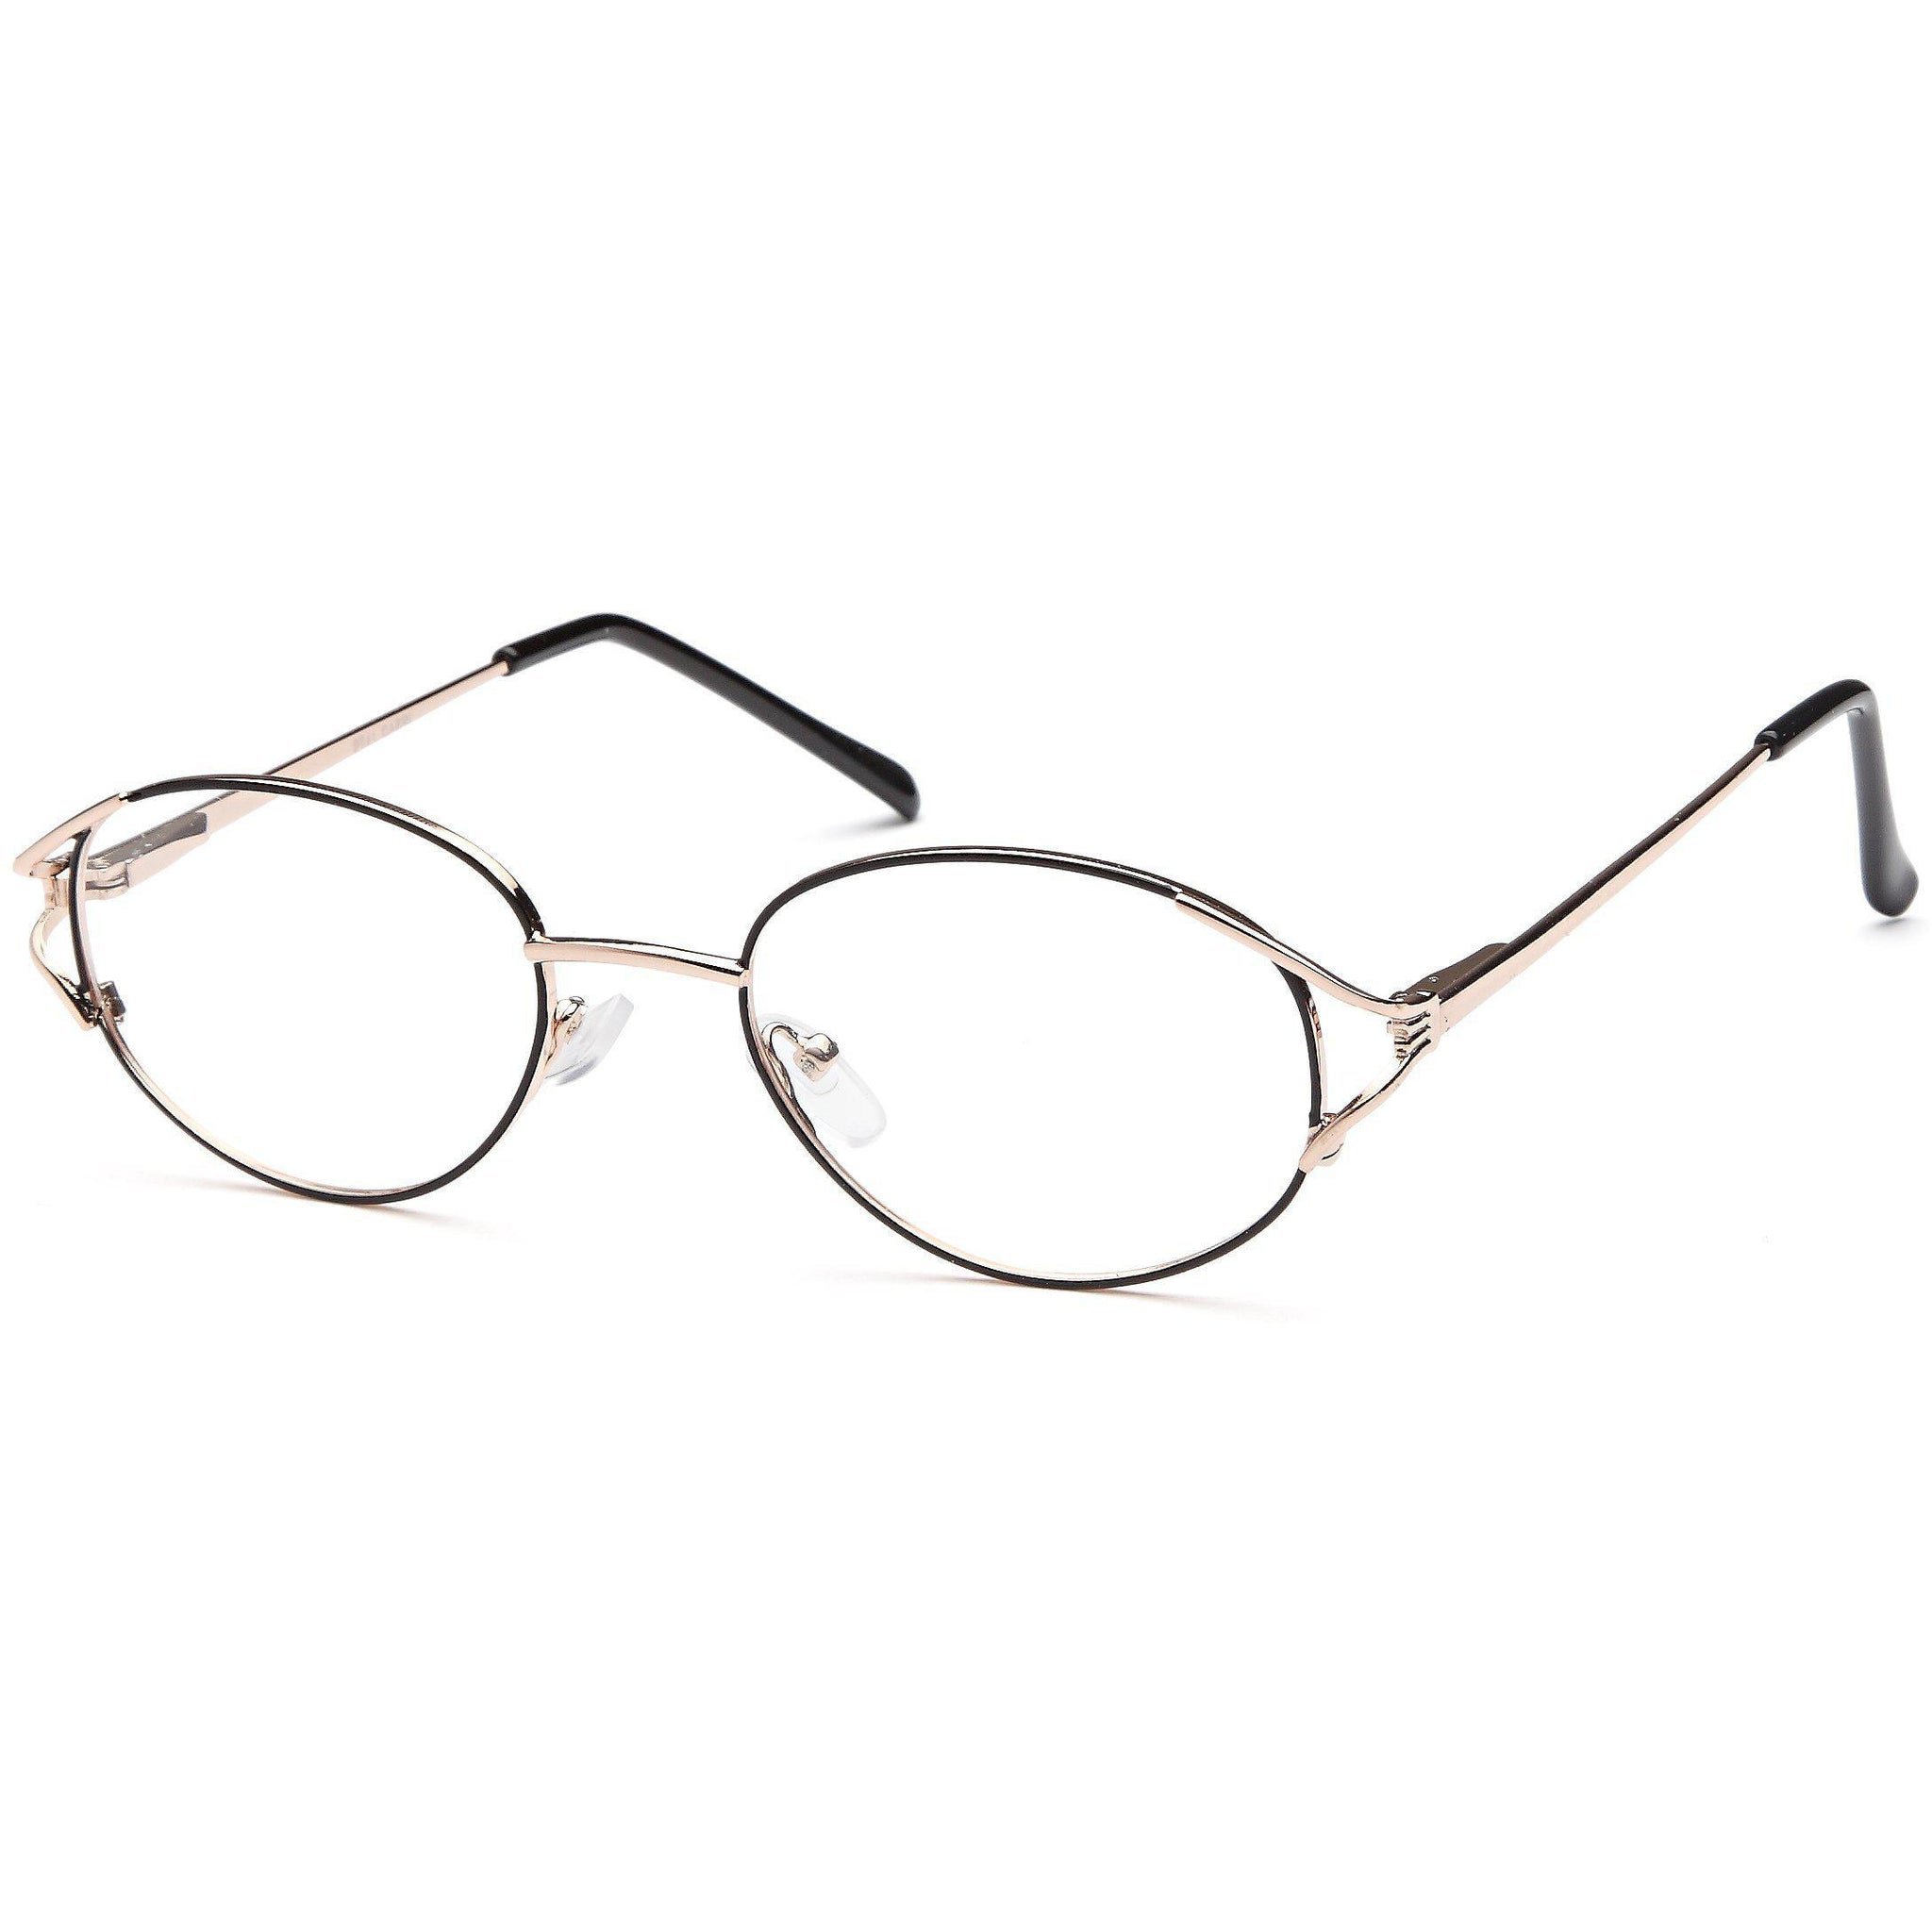 Appleree Prescription Glasses PT 41 Eyeglasses Frame